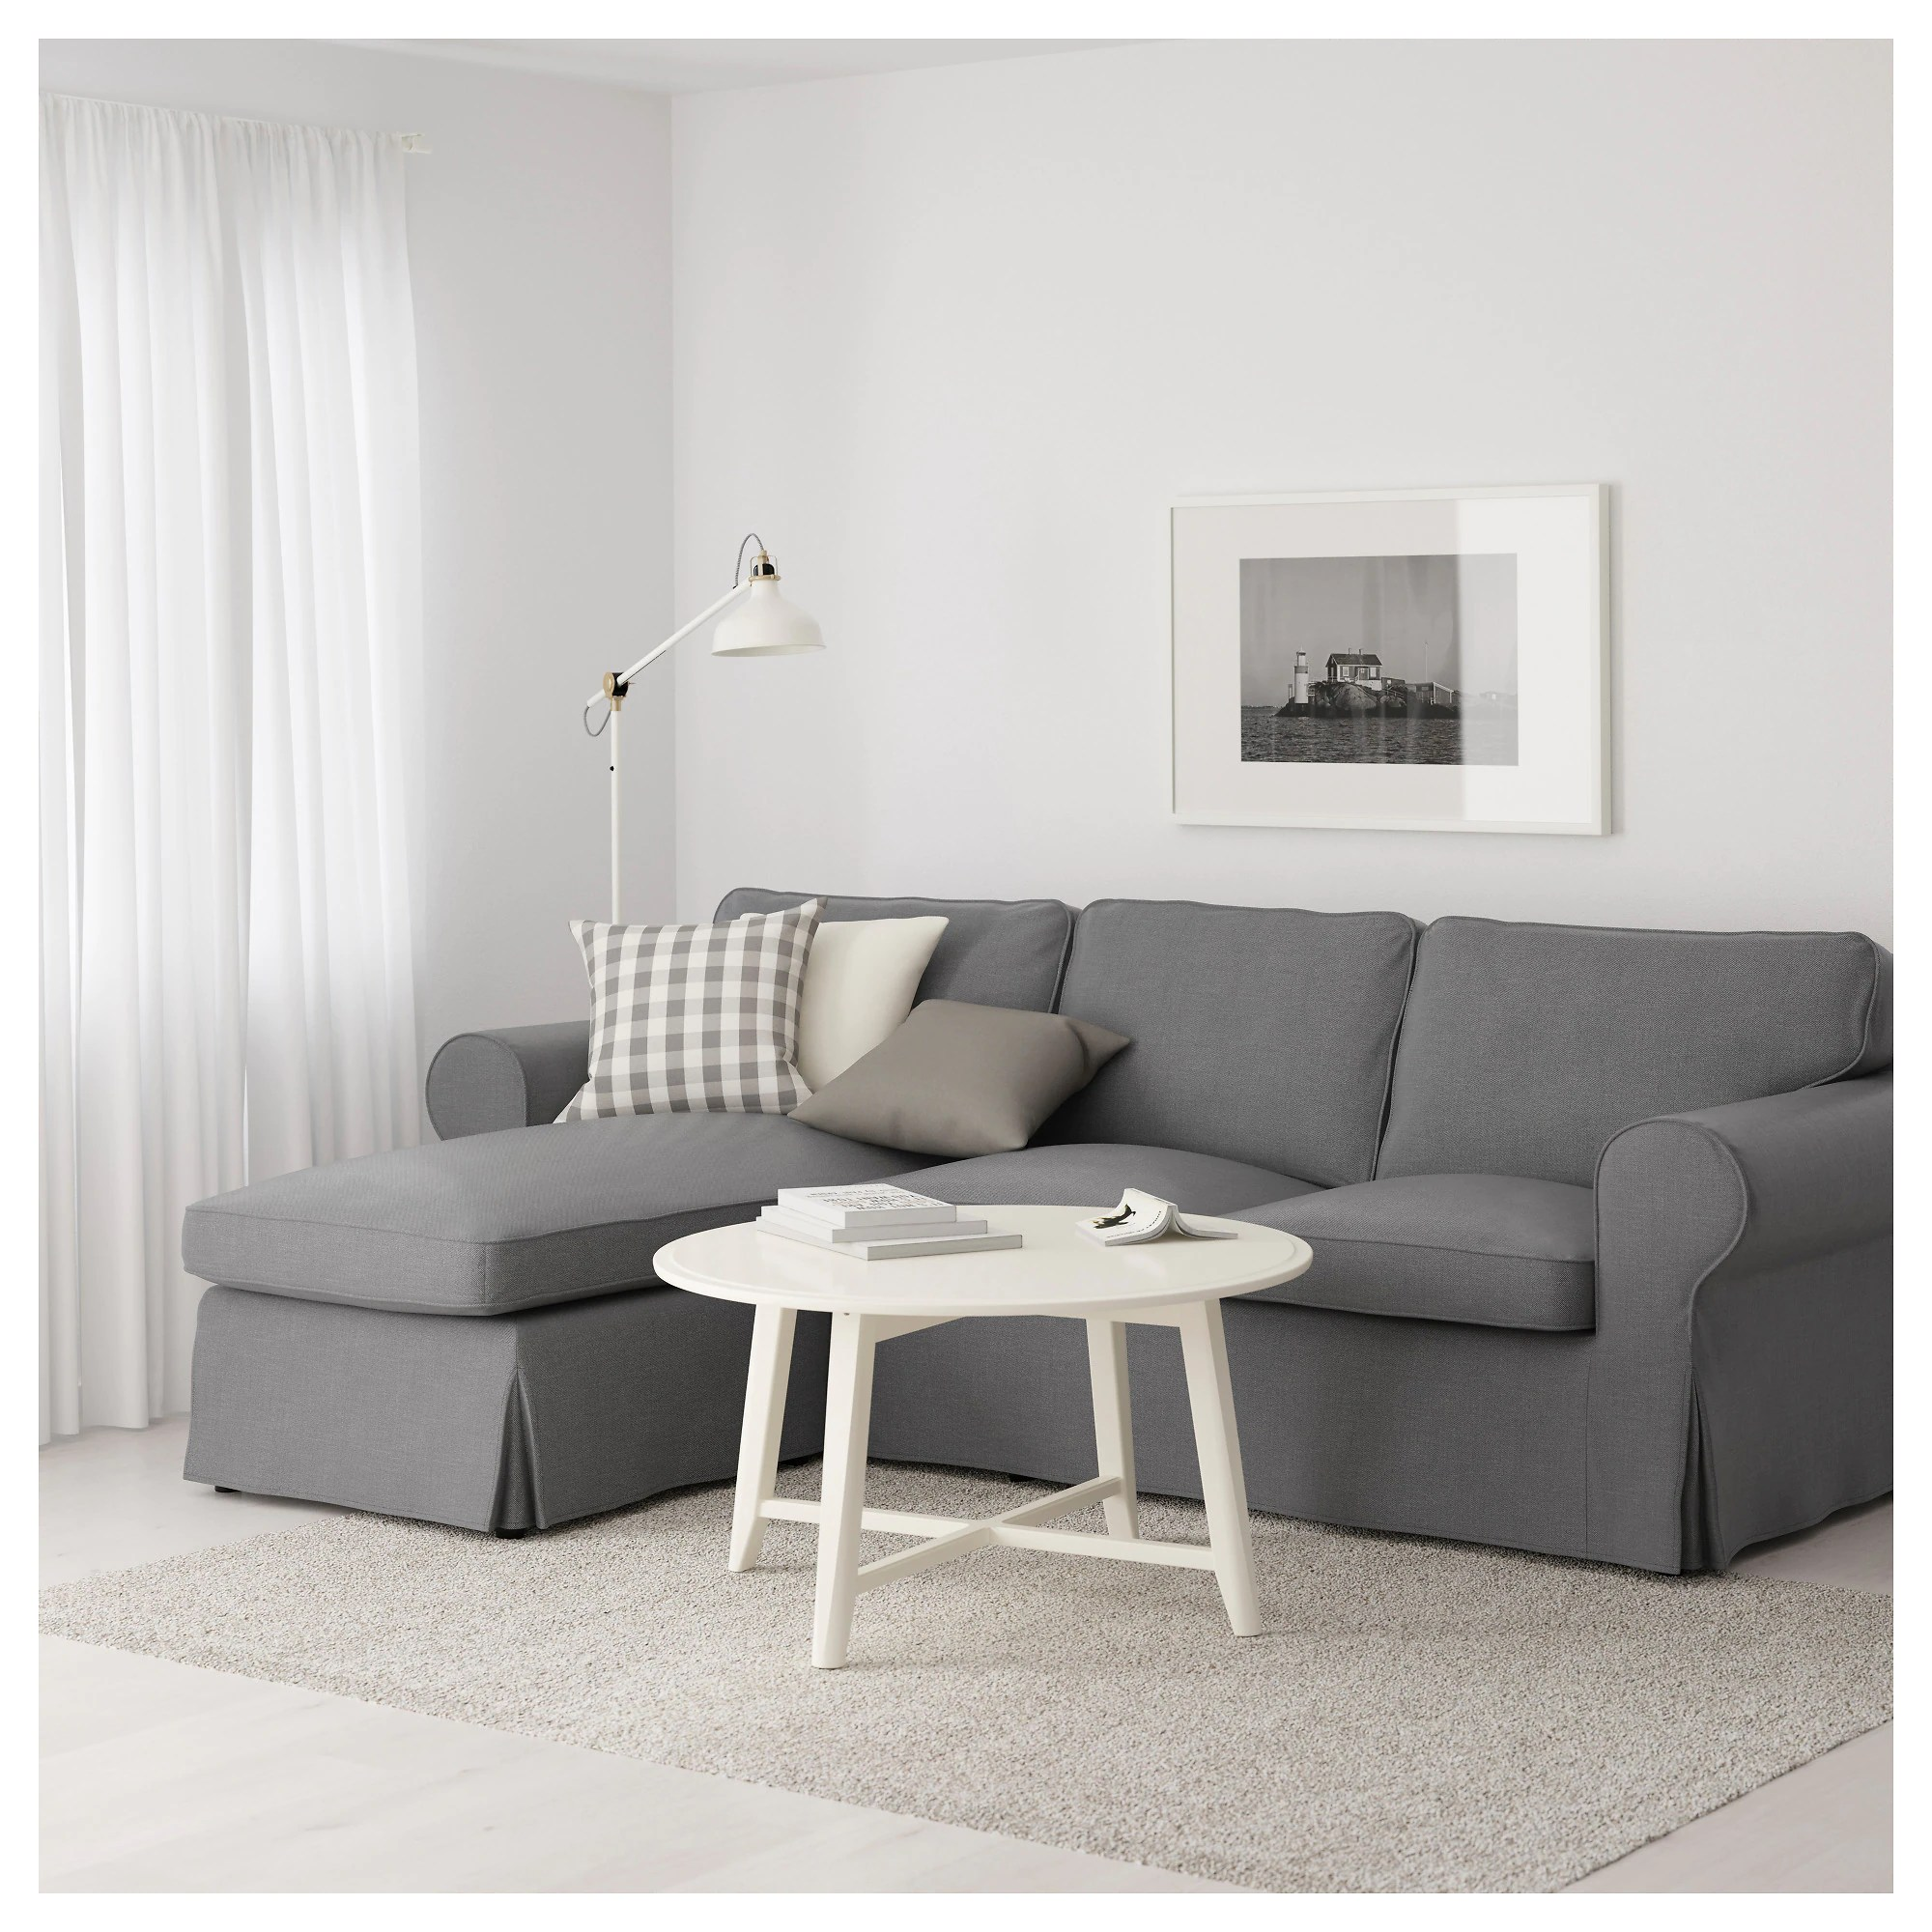 Ikea Sofa Gray Why Buying A White Ikea Couch And Chair Was A Huge Mistake